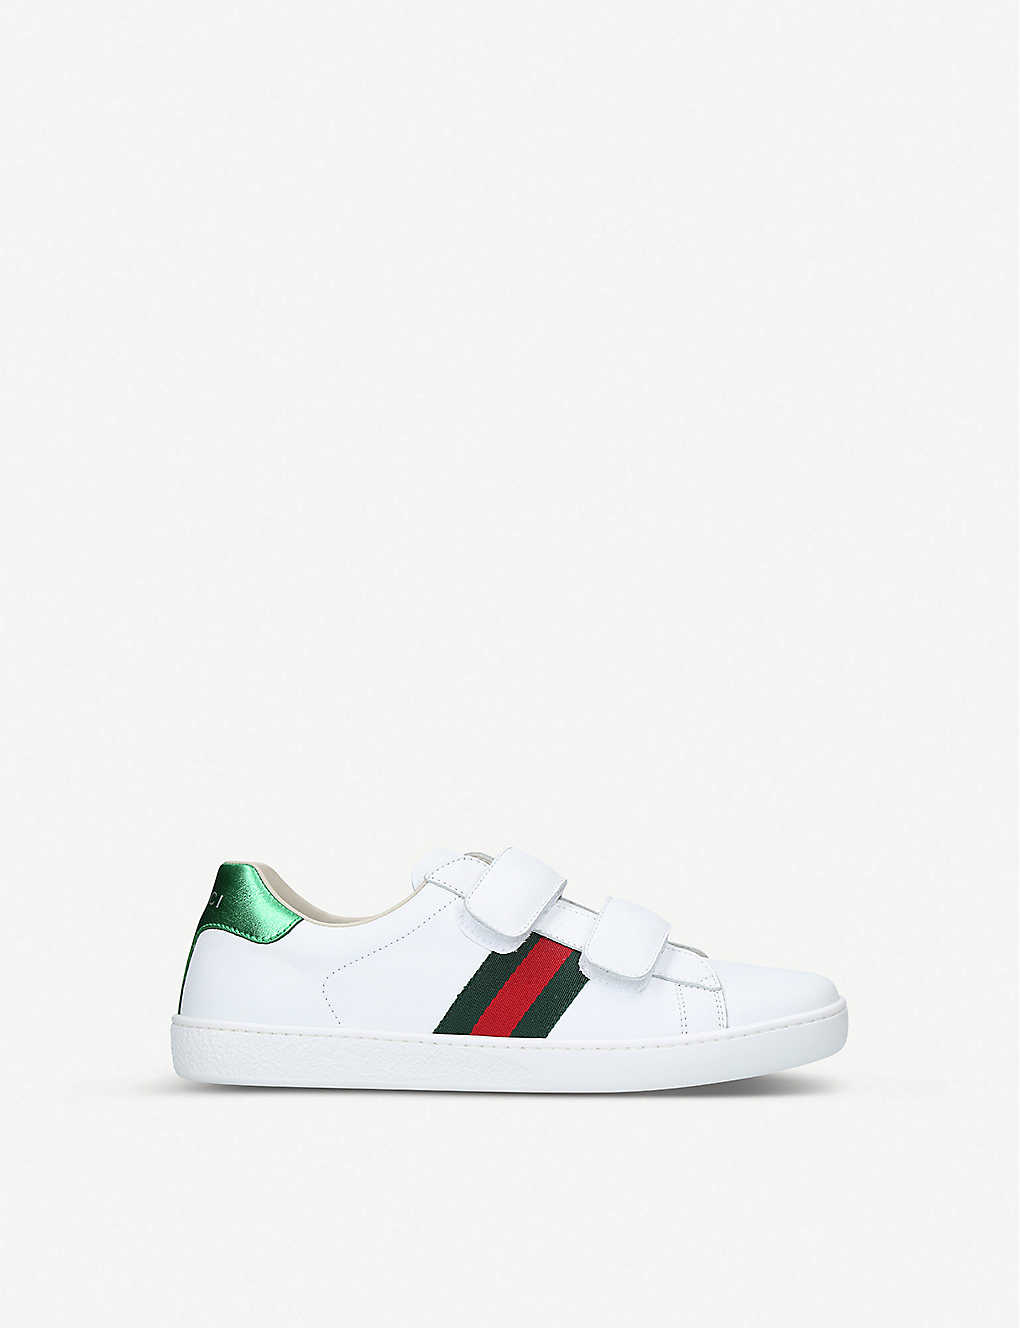 bacd64406 GUCCI - New Ace VL leather trainers 8-10 years | Selfridges.com